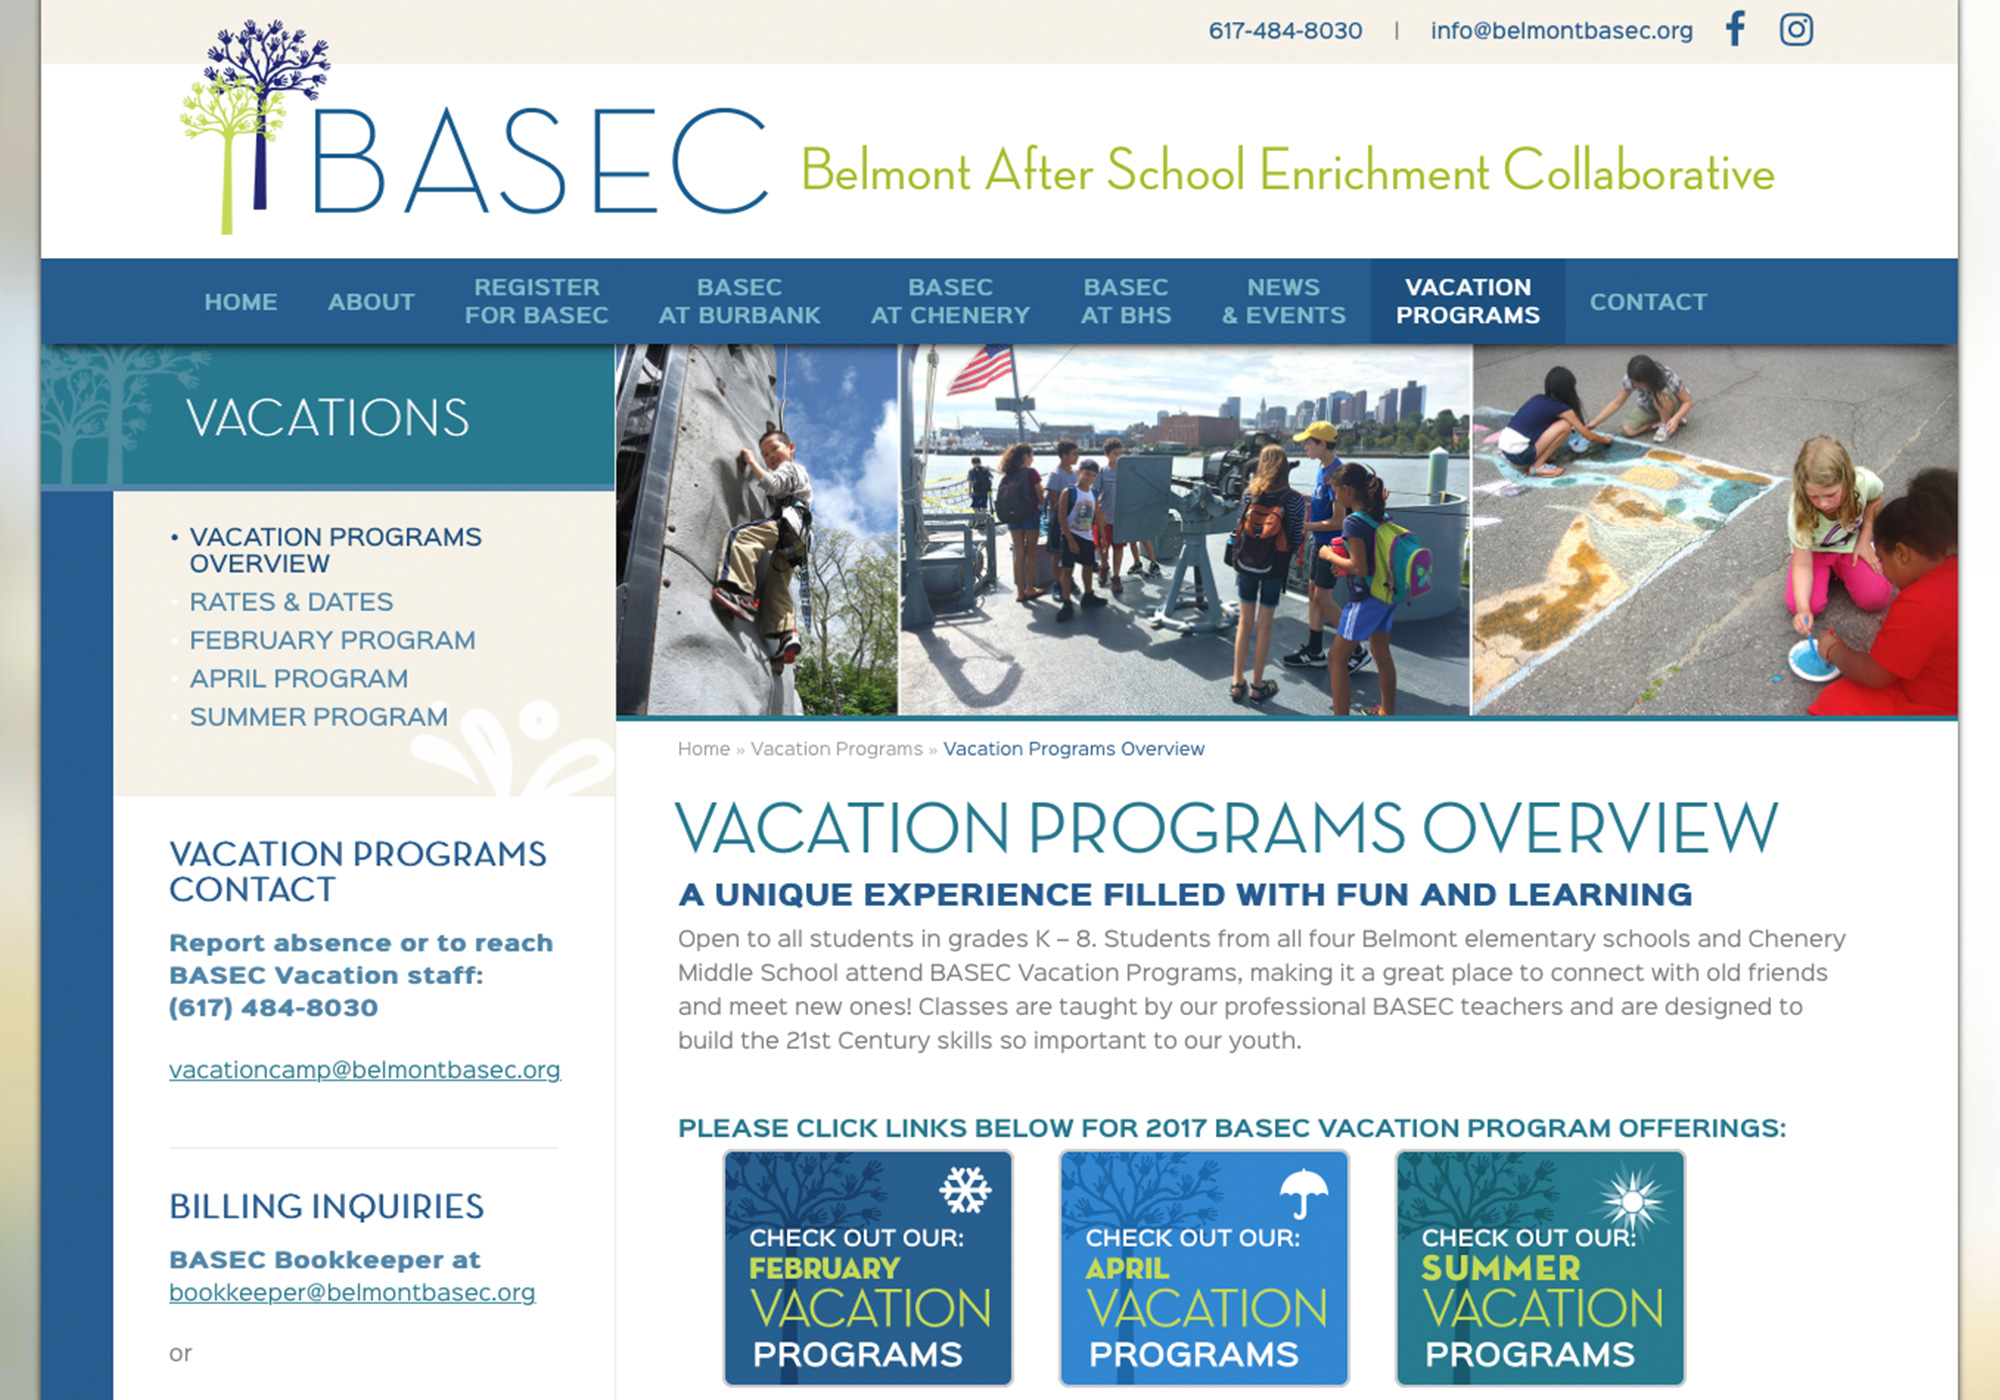 Vacation Programs has a specific look in this custom wordpress website design for the Belmont After School Enrichment Collaborative by Portland, Maine website design company, SlickFish Studios.